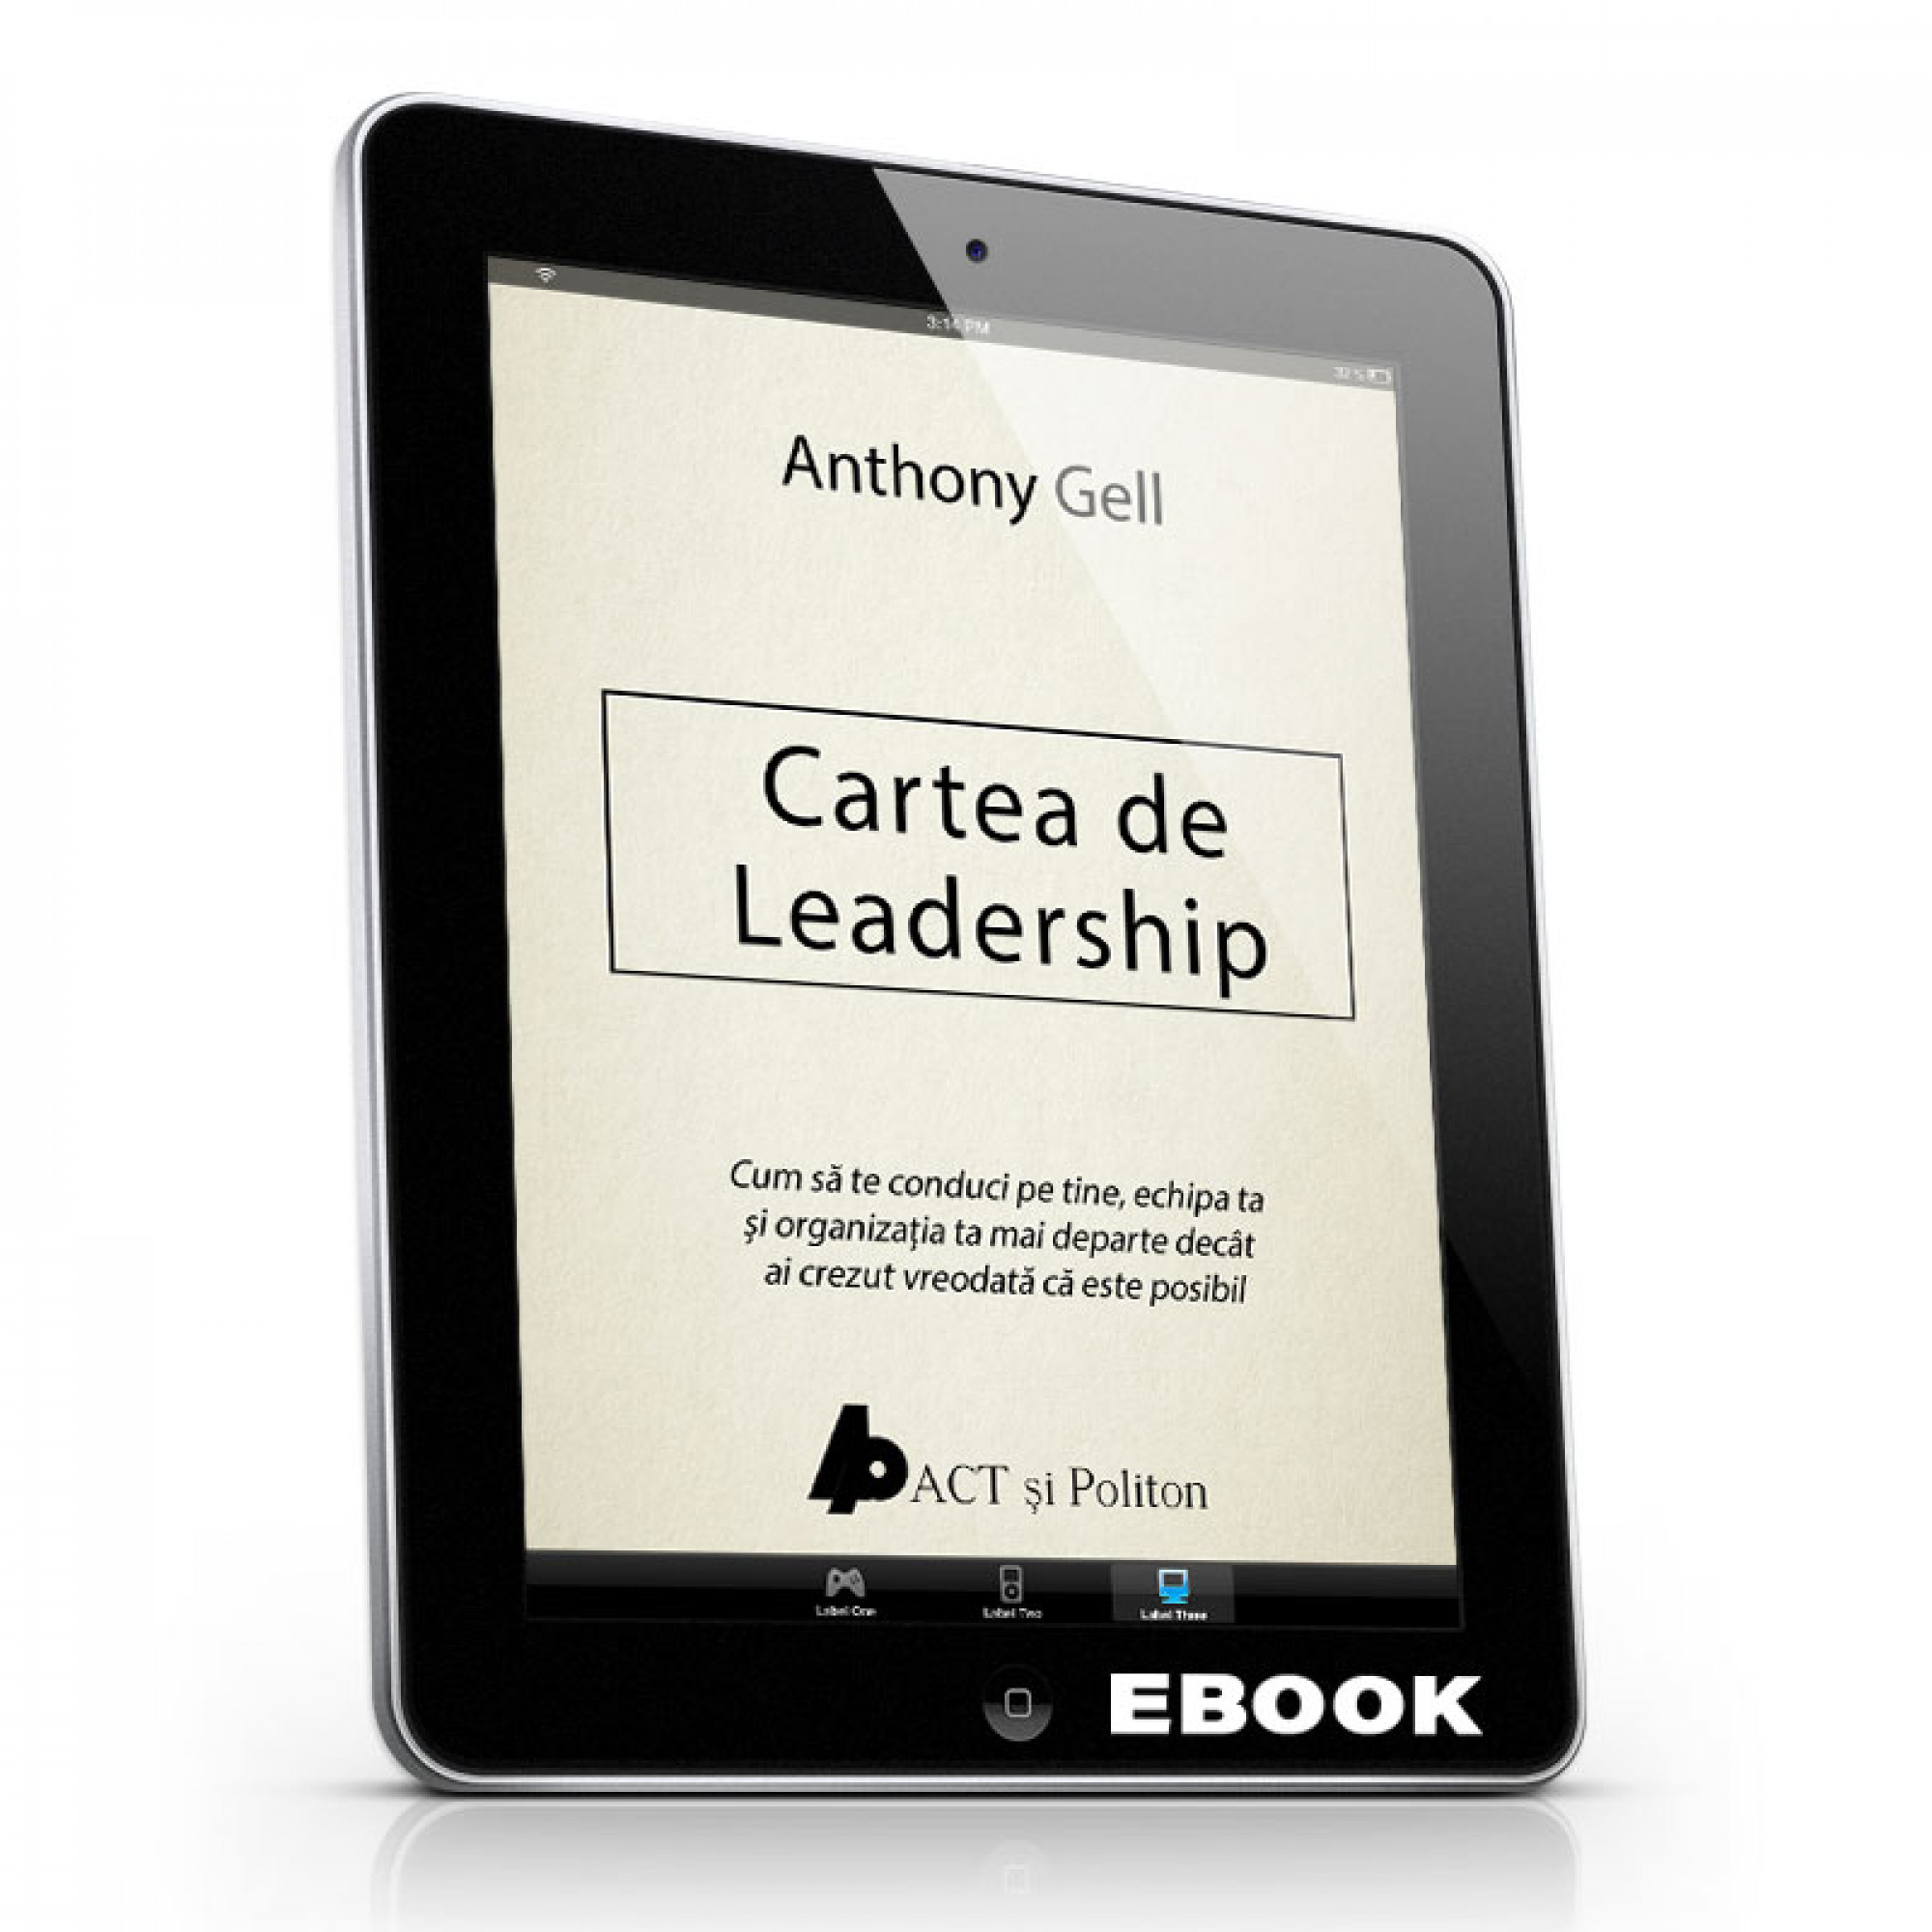 Cartea de leadership; Anthony Gell